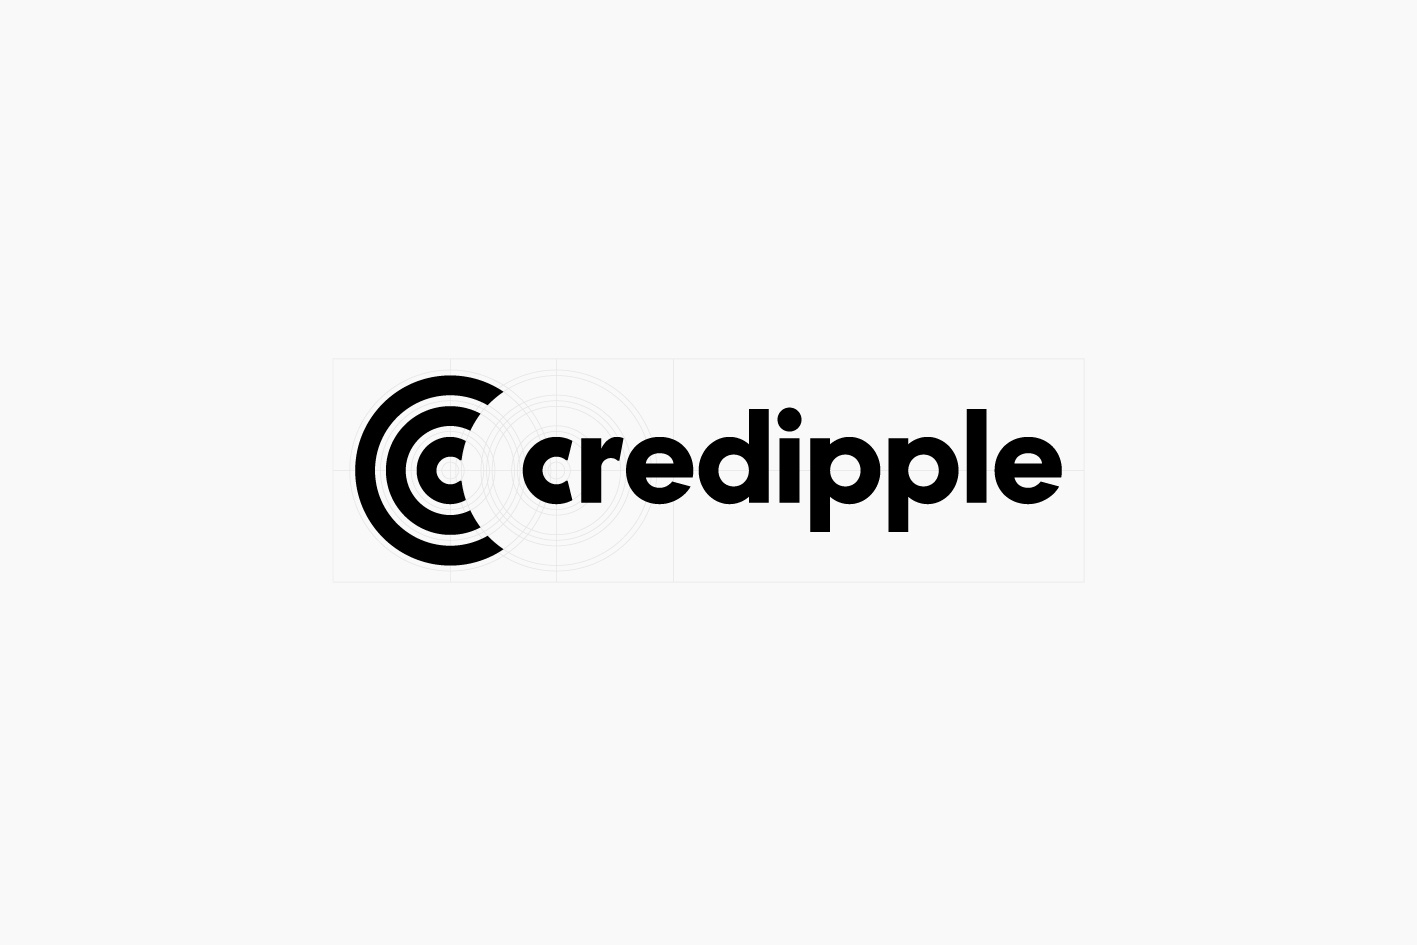 Credipple icon and wordmark construction